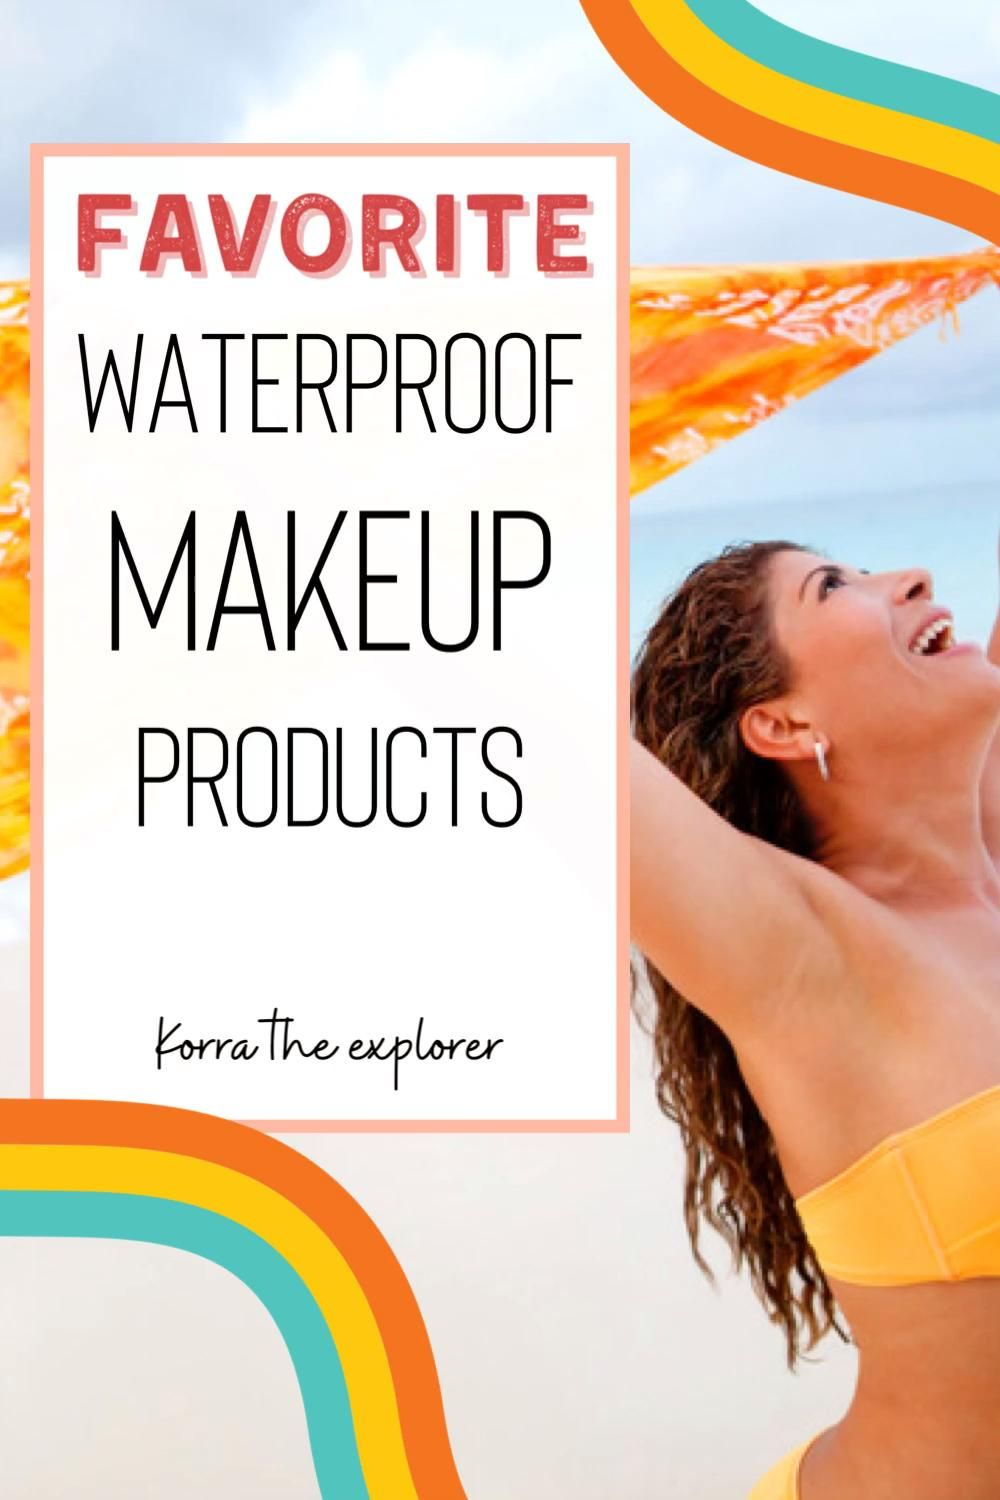 Favorite waterproof makeup products! The best waterproof makeup favorites. The makeup that will really stay on all day. #makeup #makeupfavorites #longlastingmakeup #stayonmakeup #beautyblogger